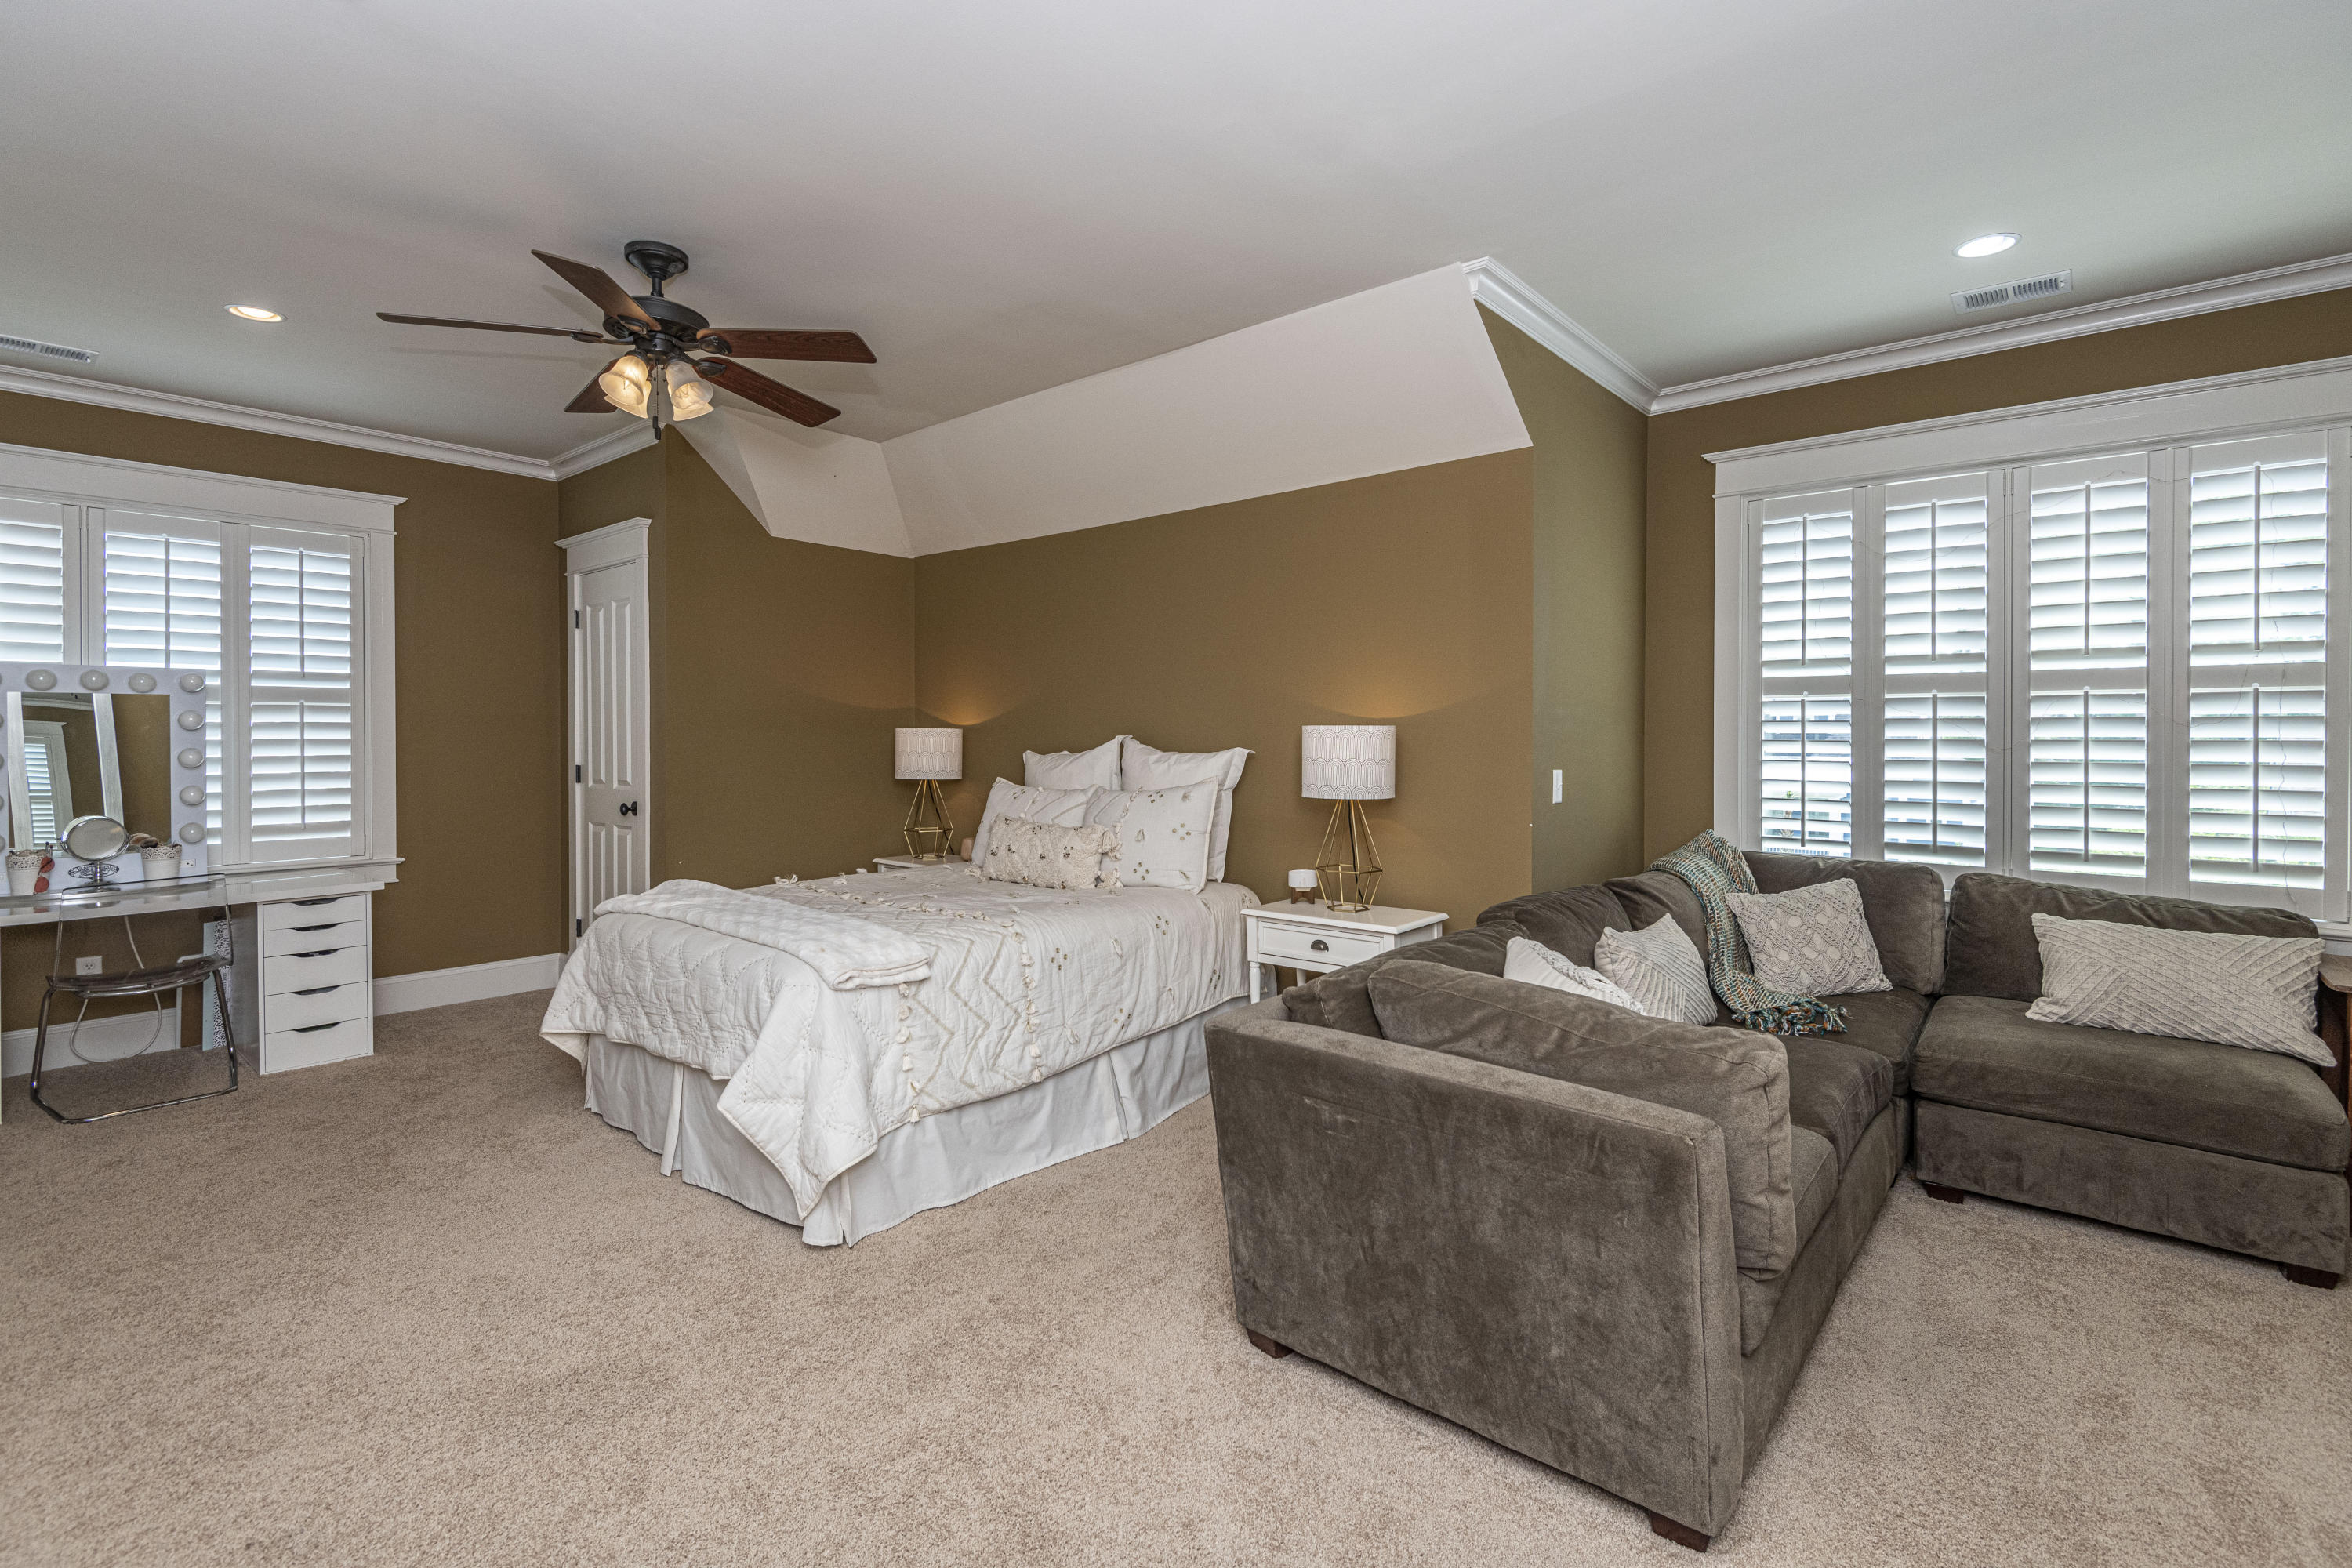 Dunes West Homes For Sale - 2836 Stay Sail, Mount Pleasant, SC - 25